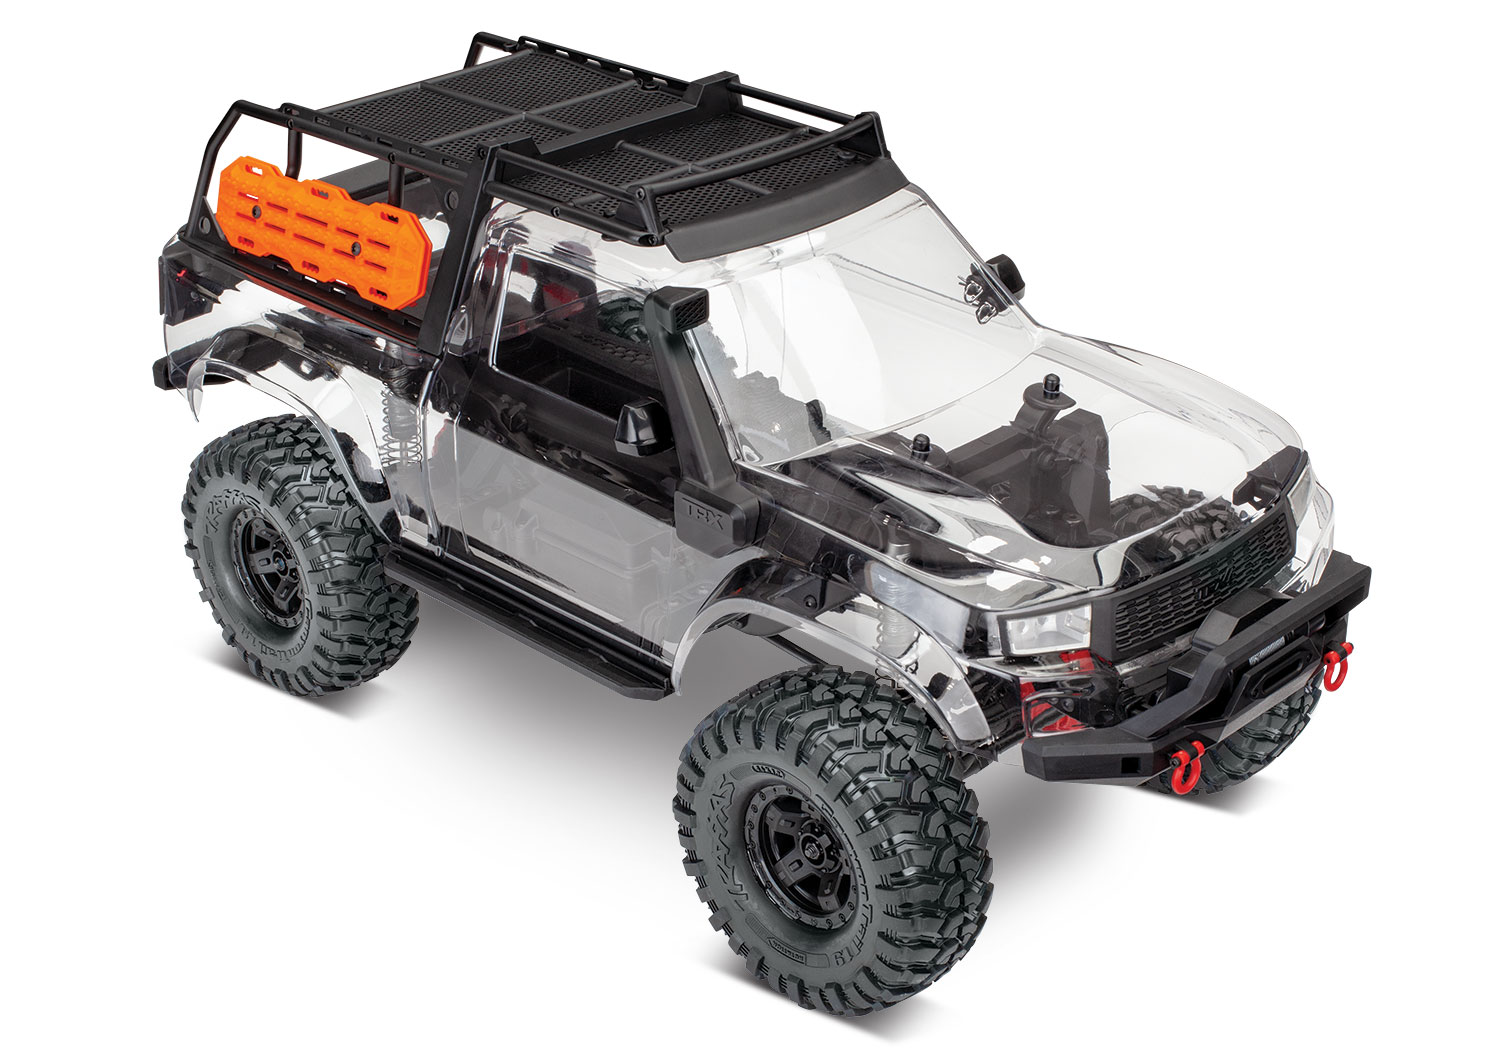 Assembled TRX-4 Sport Kit with Accessories